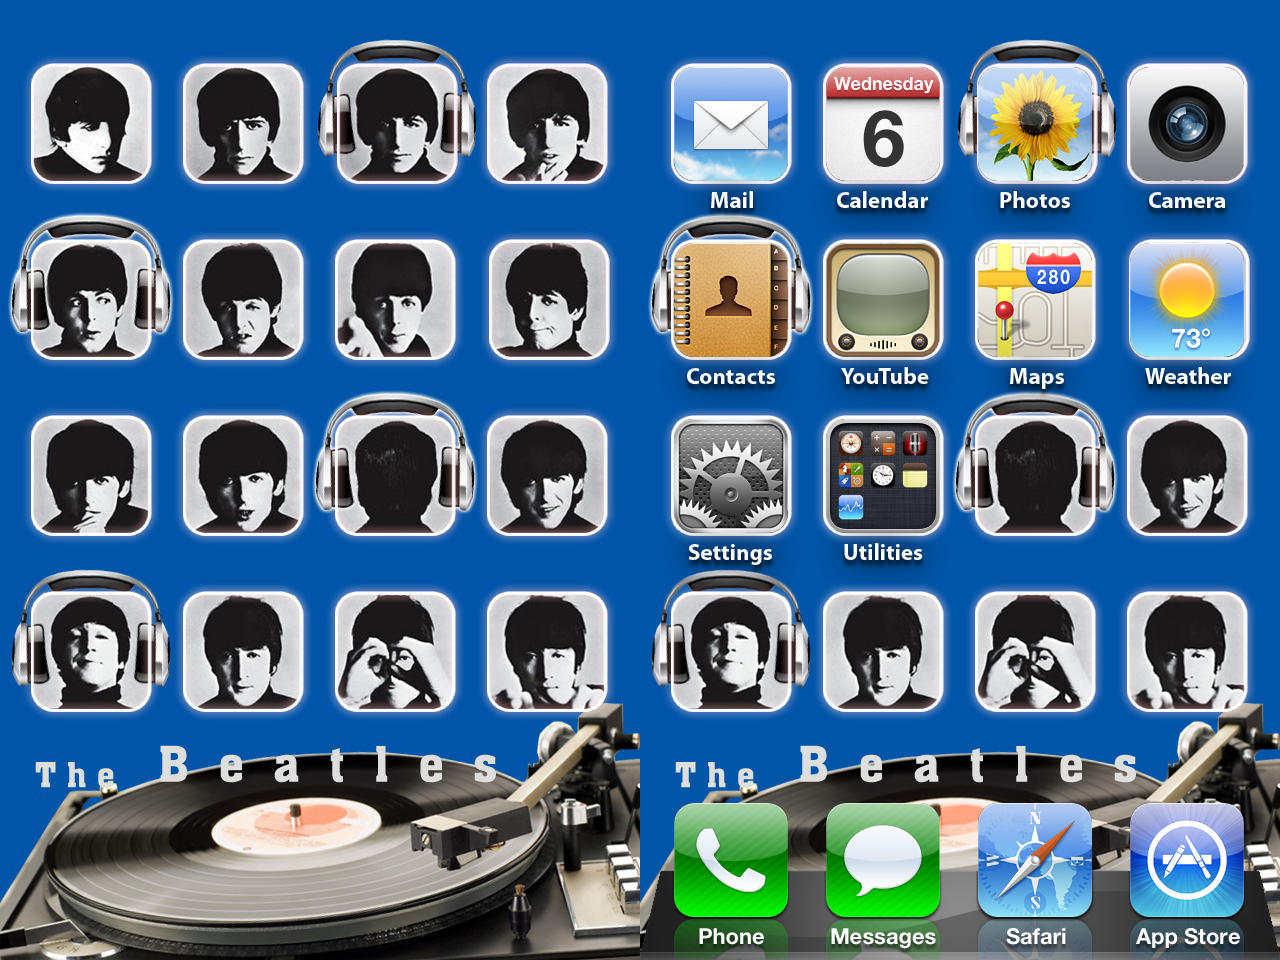 The beatles wallpaper iphone by chrisssg on deviantart - The beatles wallpaper iphone ...